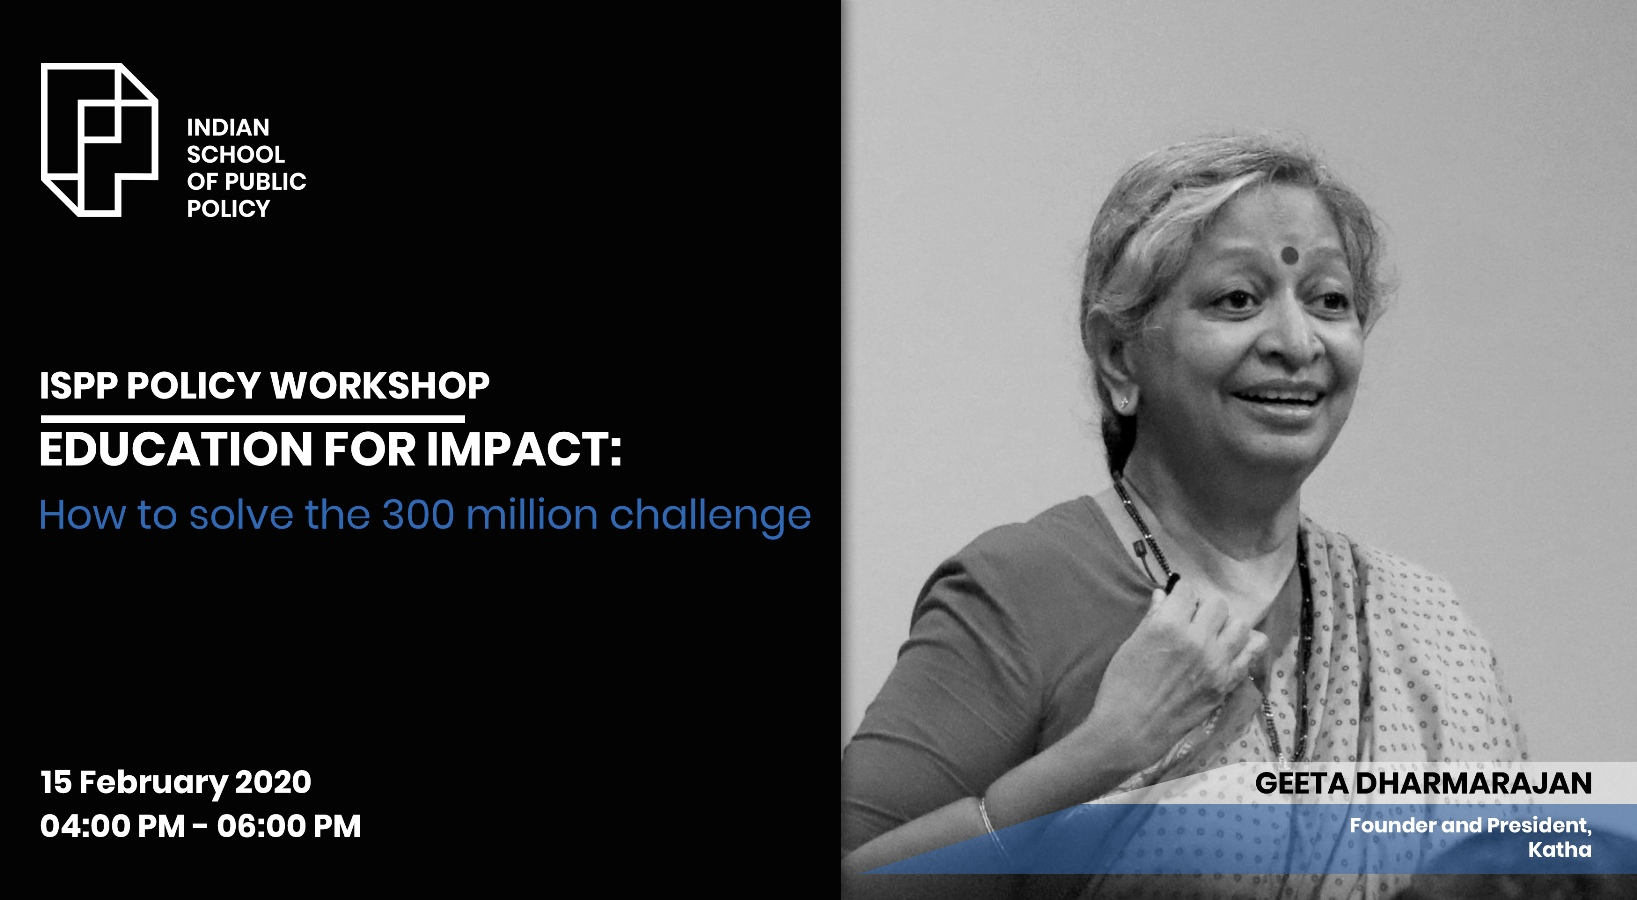 Education for Impact : How to solve the 300 million challenge